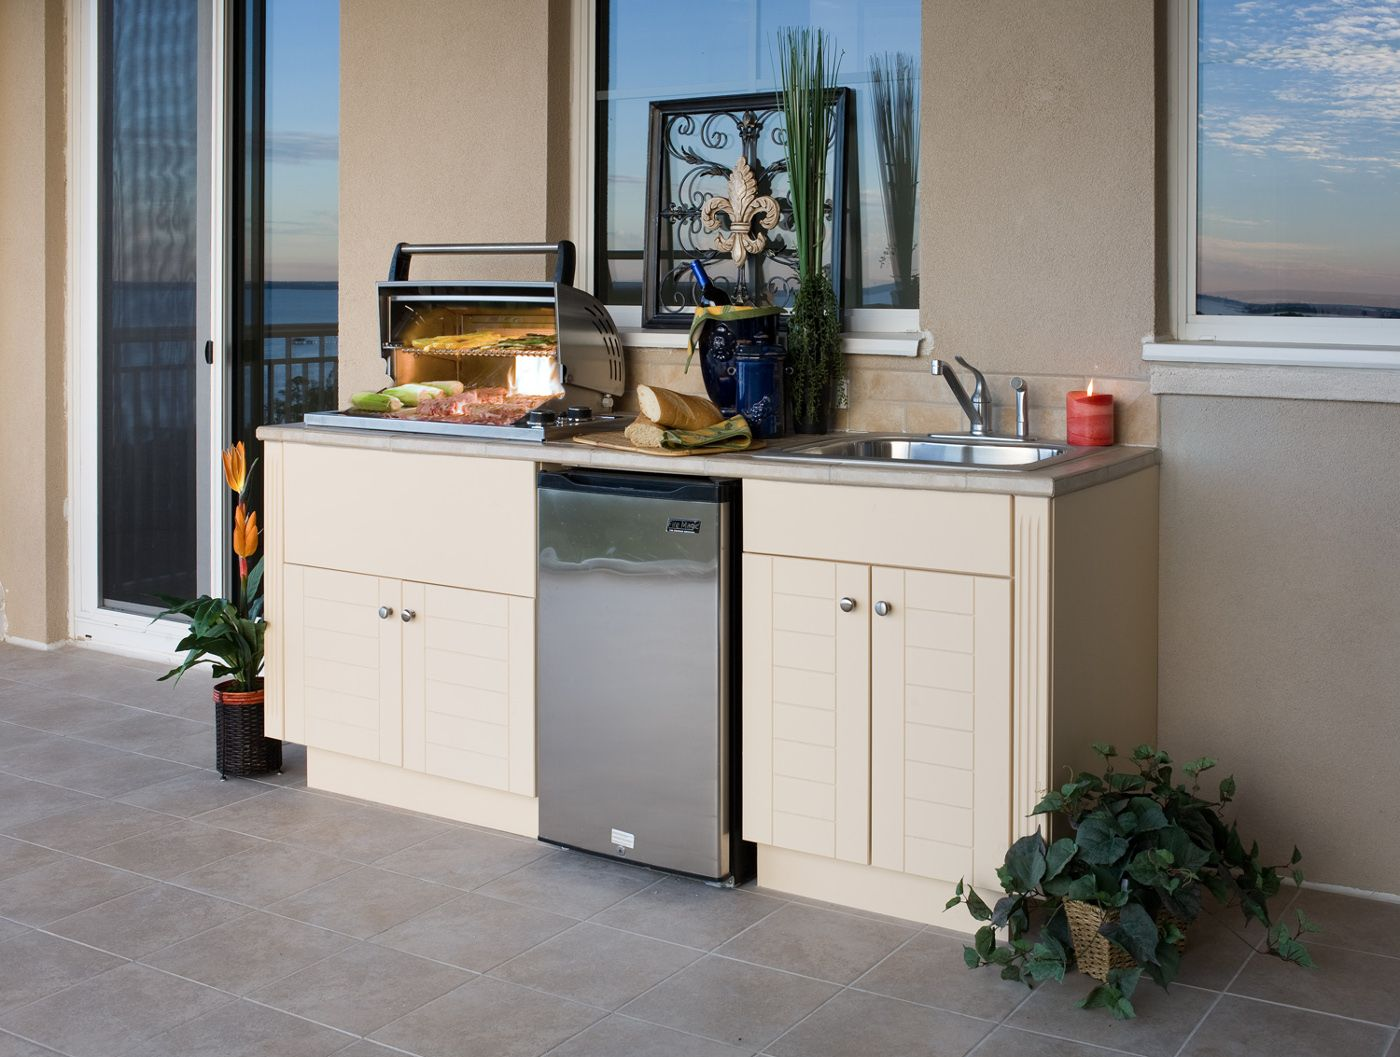 Select Outdoor Cabinets That Are Weather Proof Outdoor Kitchen Cabinets Simple Outdoor Kitchen Small Outdoor Kitchens